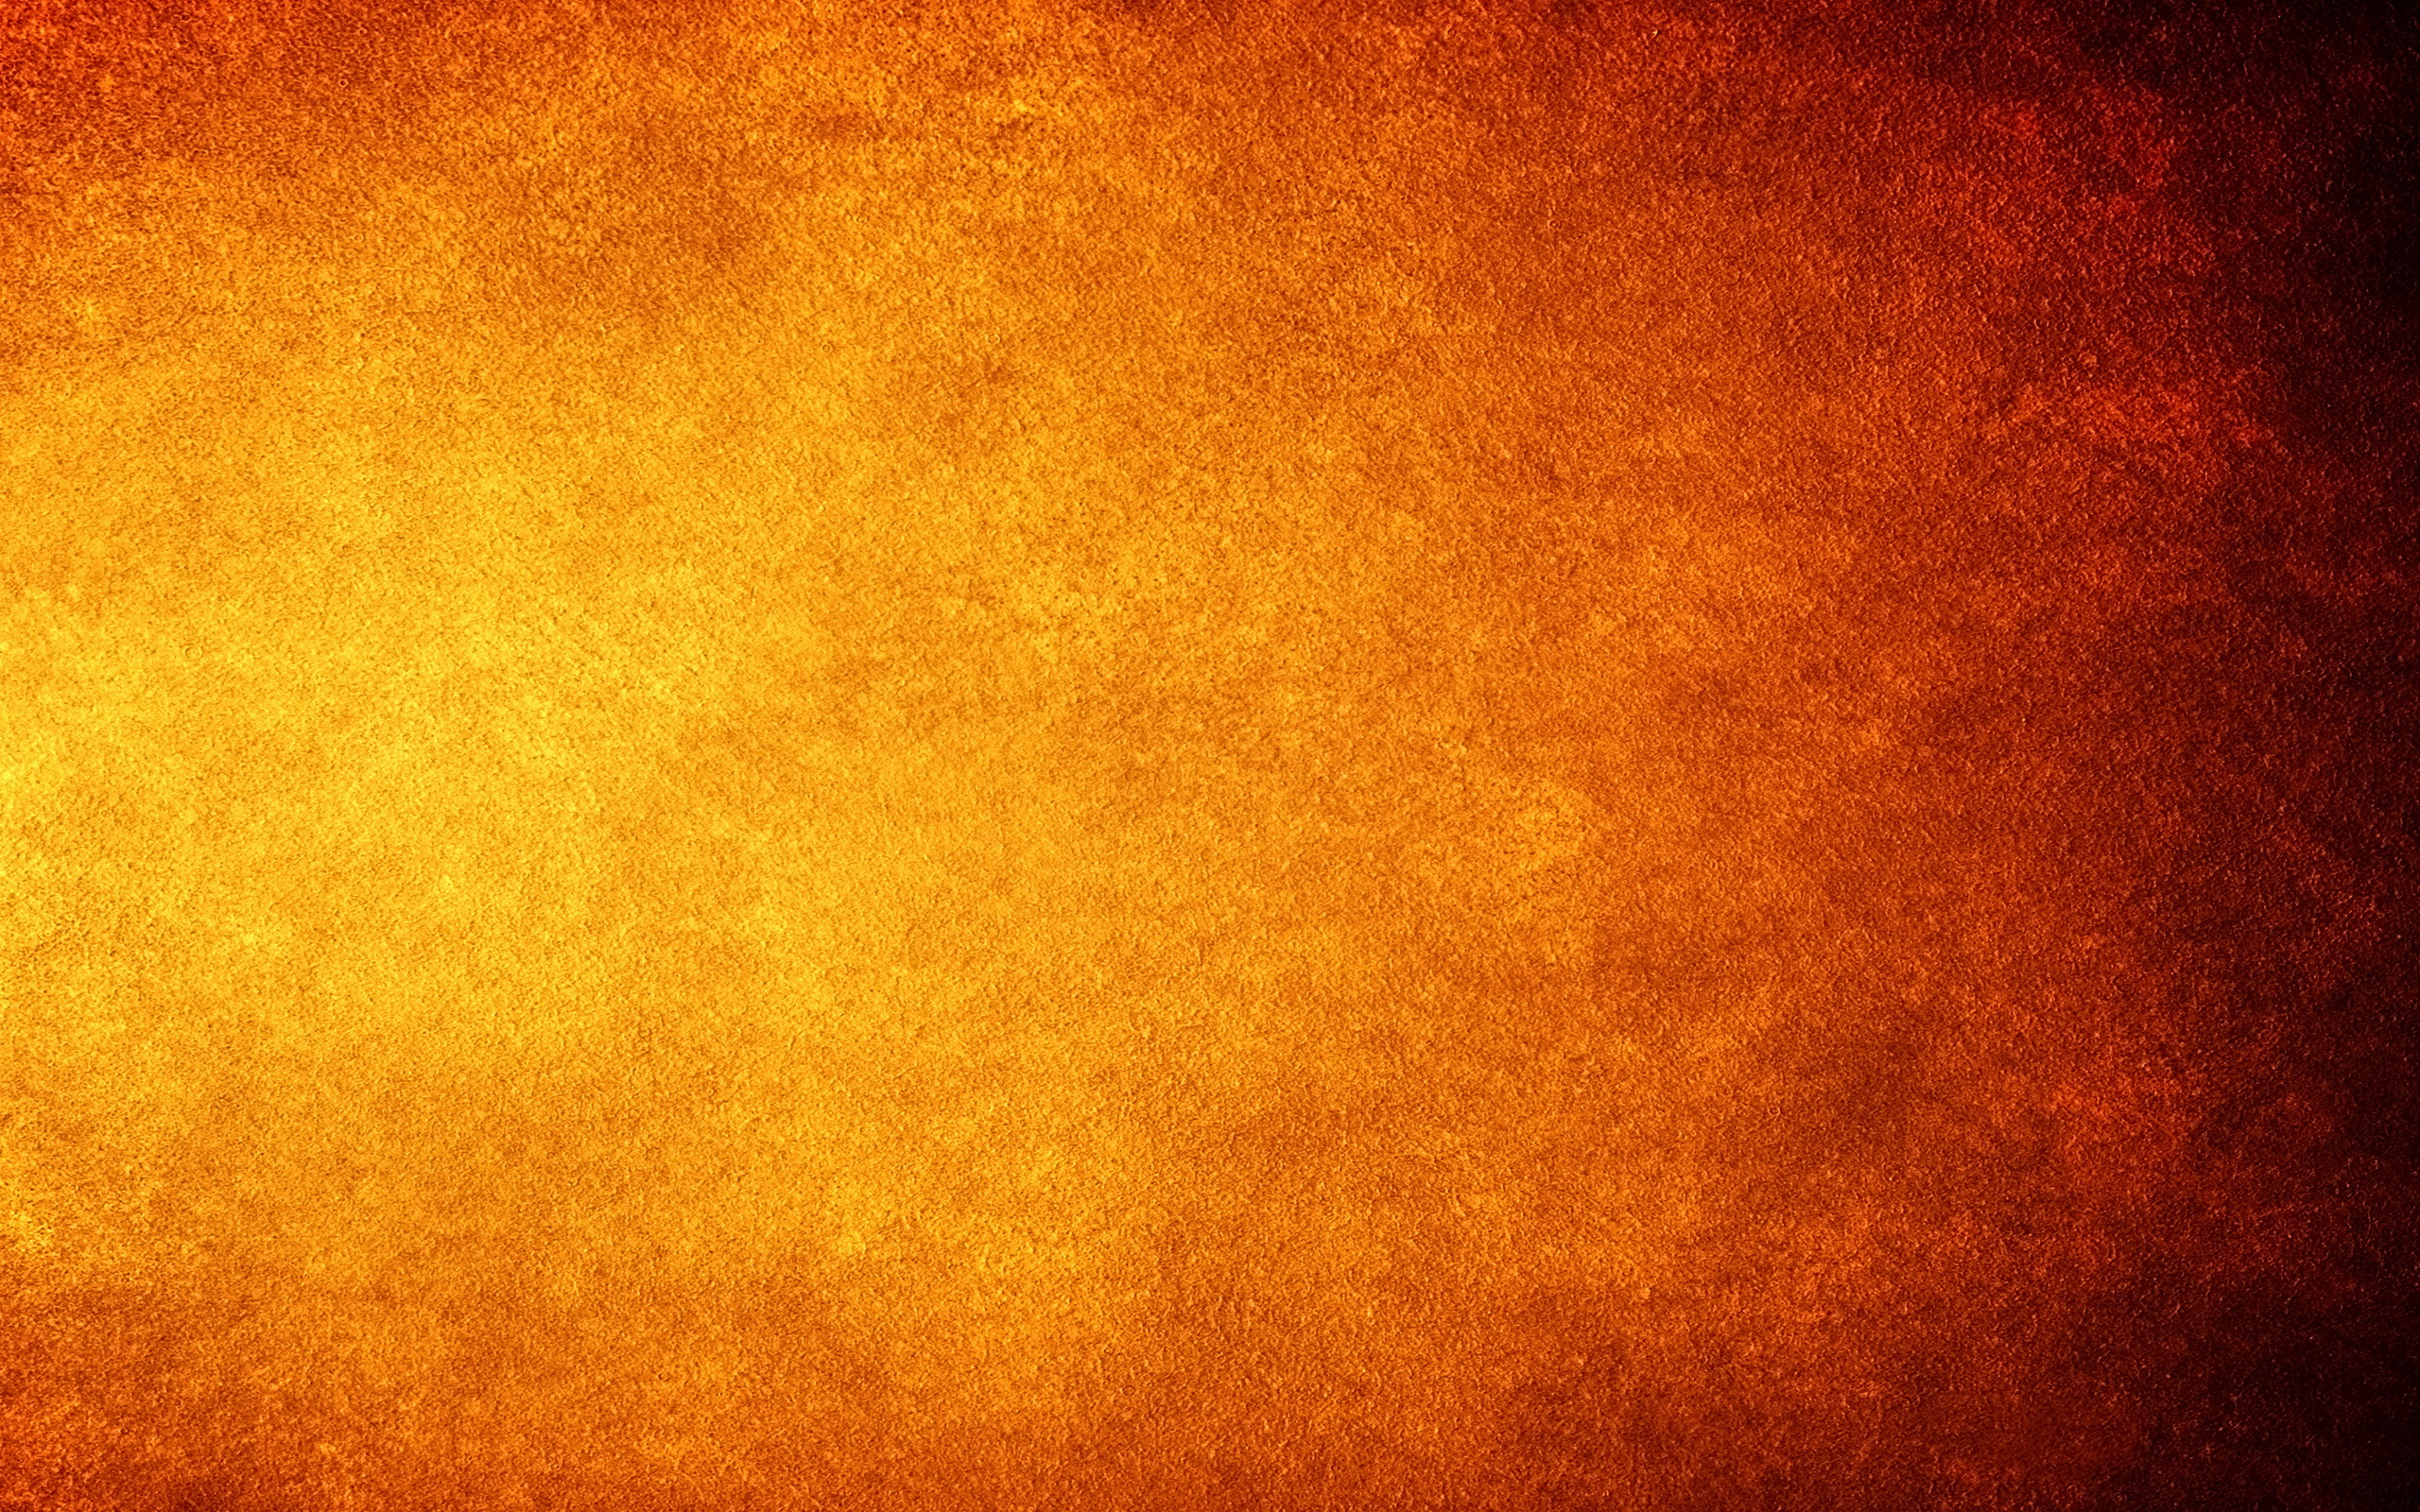 Orange Red HD Wallpapers Backgrounds 2560x1600